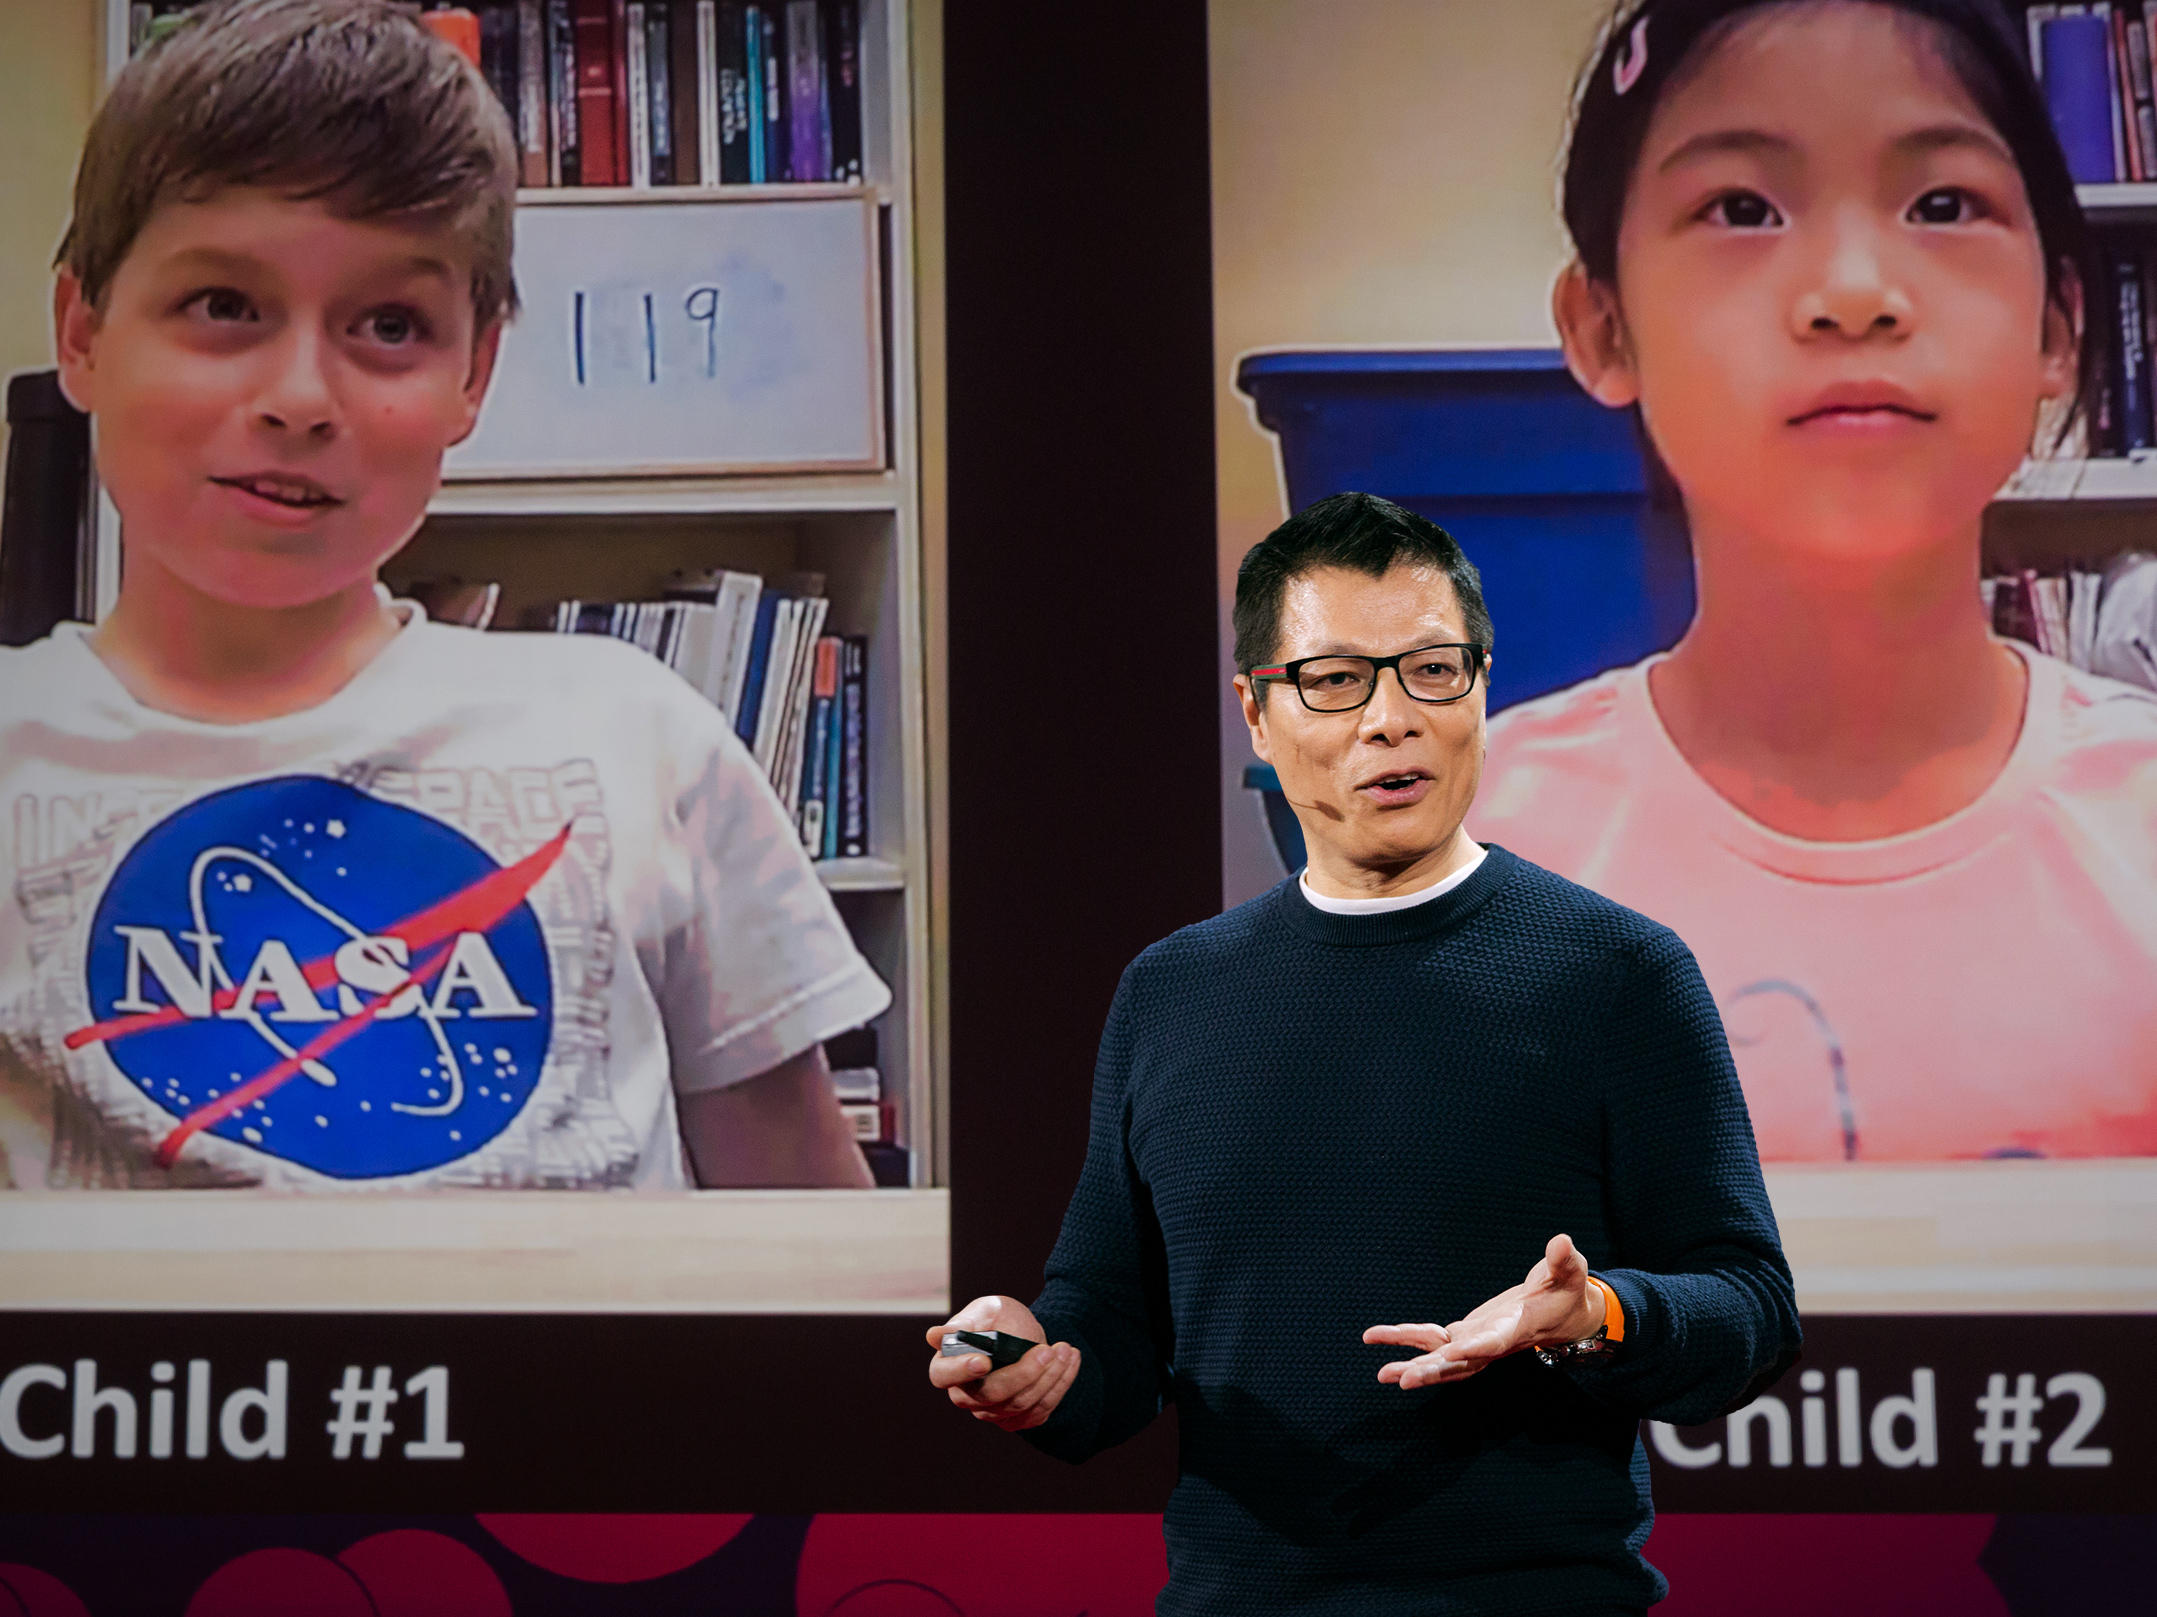 Image result for Kang Lee: Can Technology Detect Our Hidden Emotions?